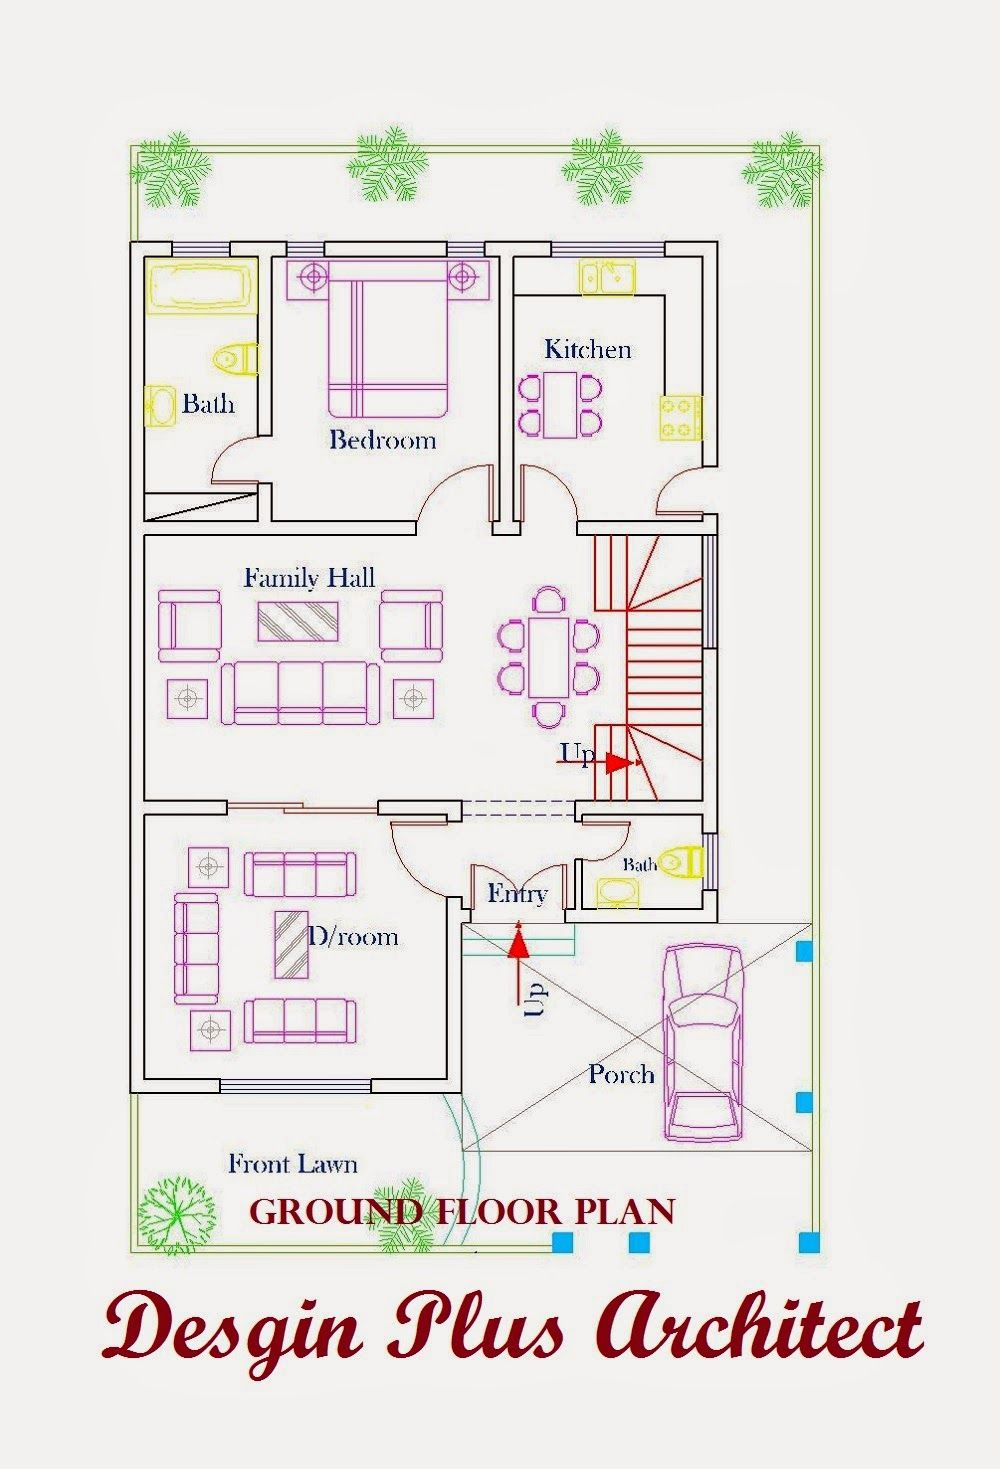 Home plans home plans in pakistan home decorating 2d for Architecture design for home in pakistan